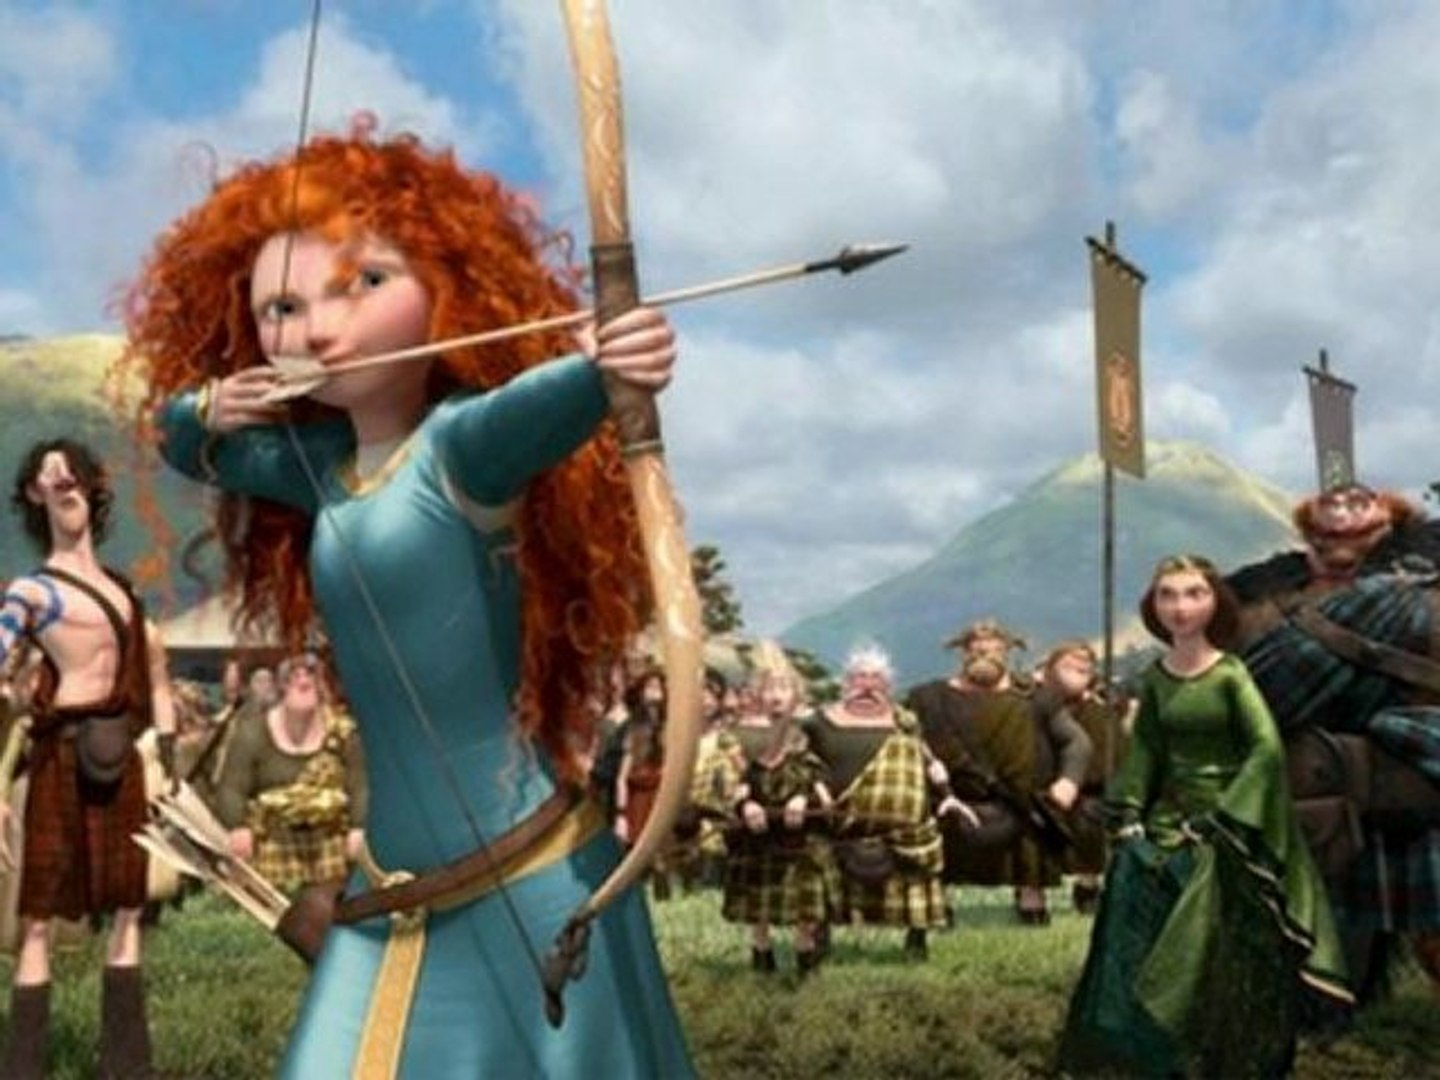 Brave Movie Download 2012 HD Full Movie - Disney Full Movie